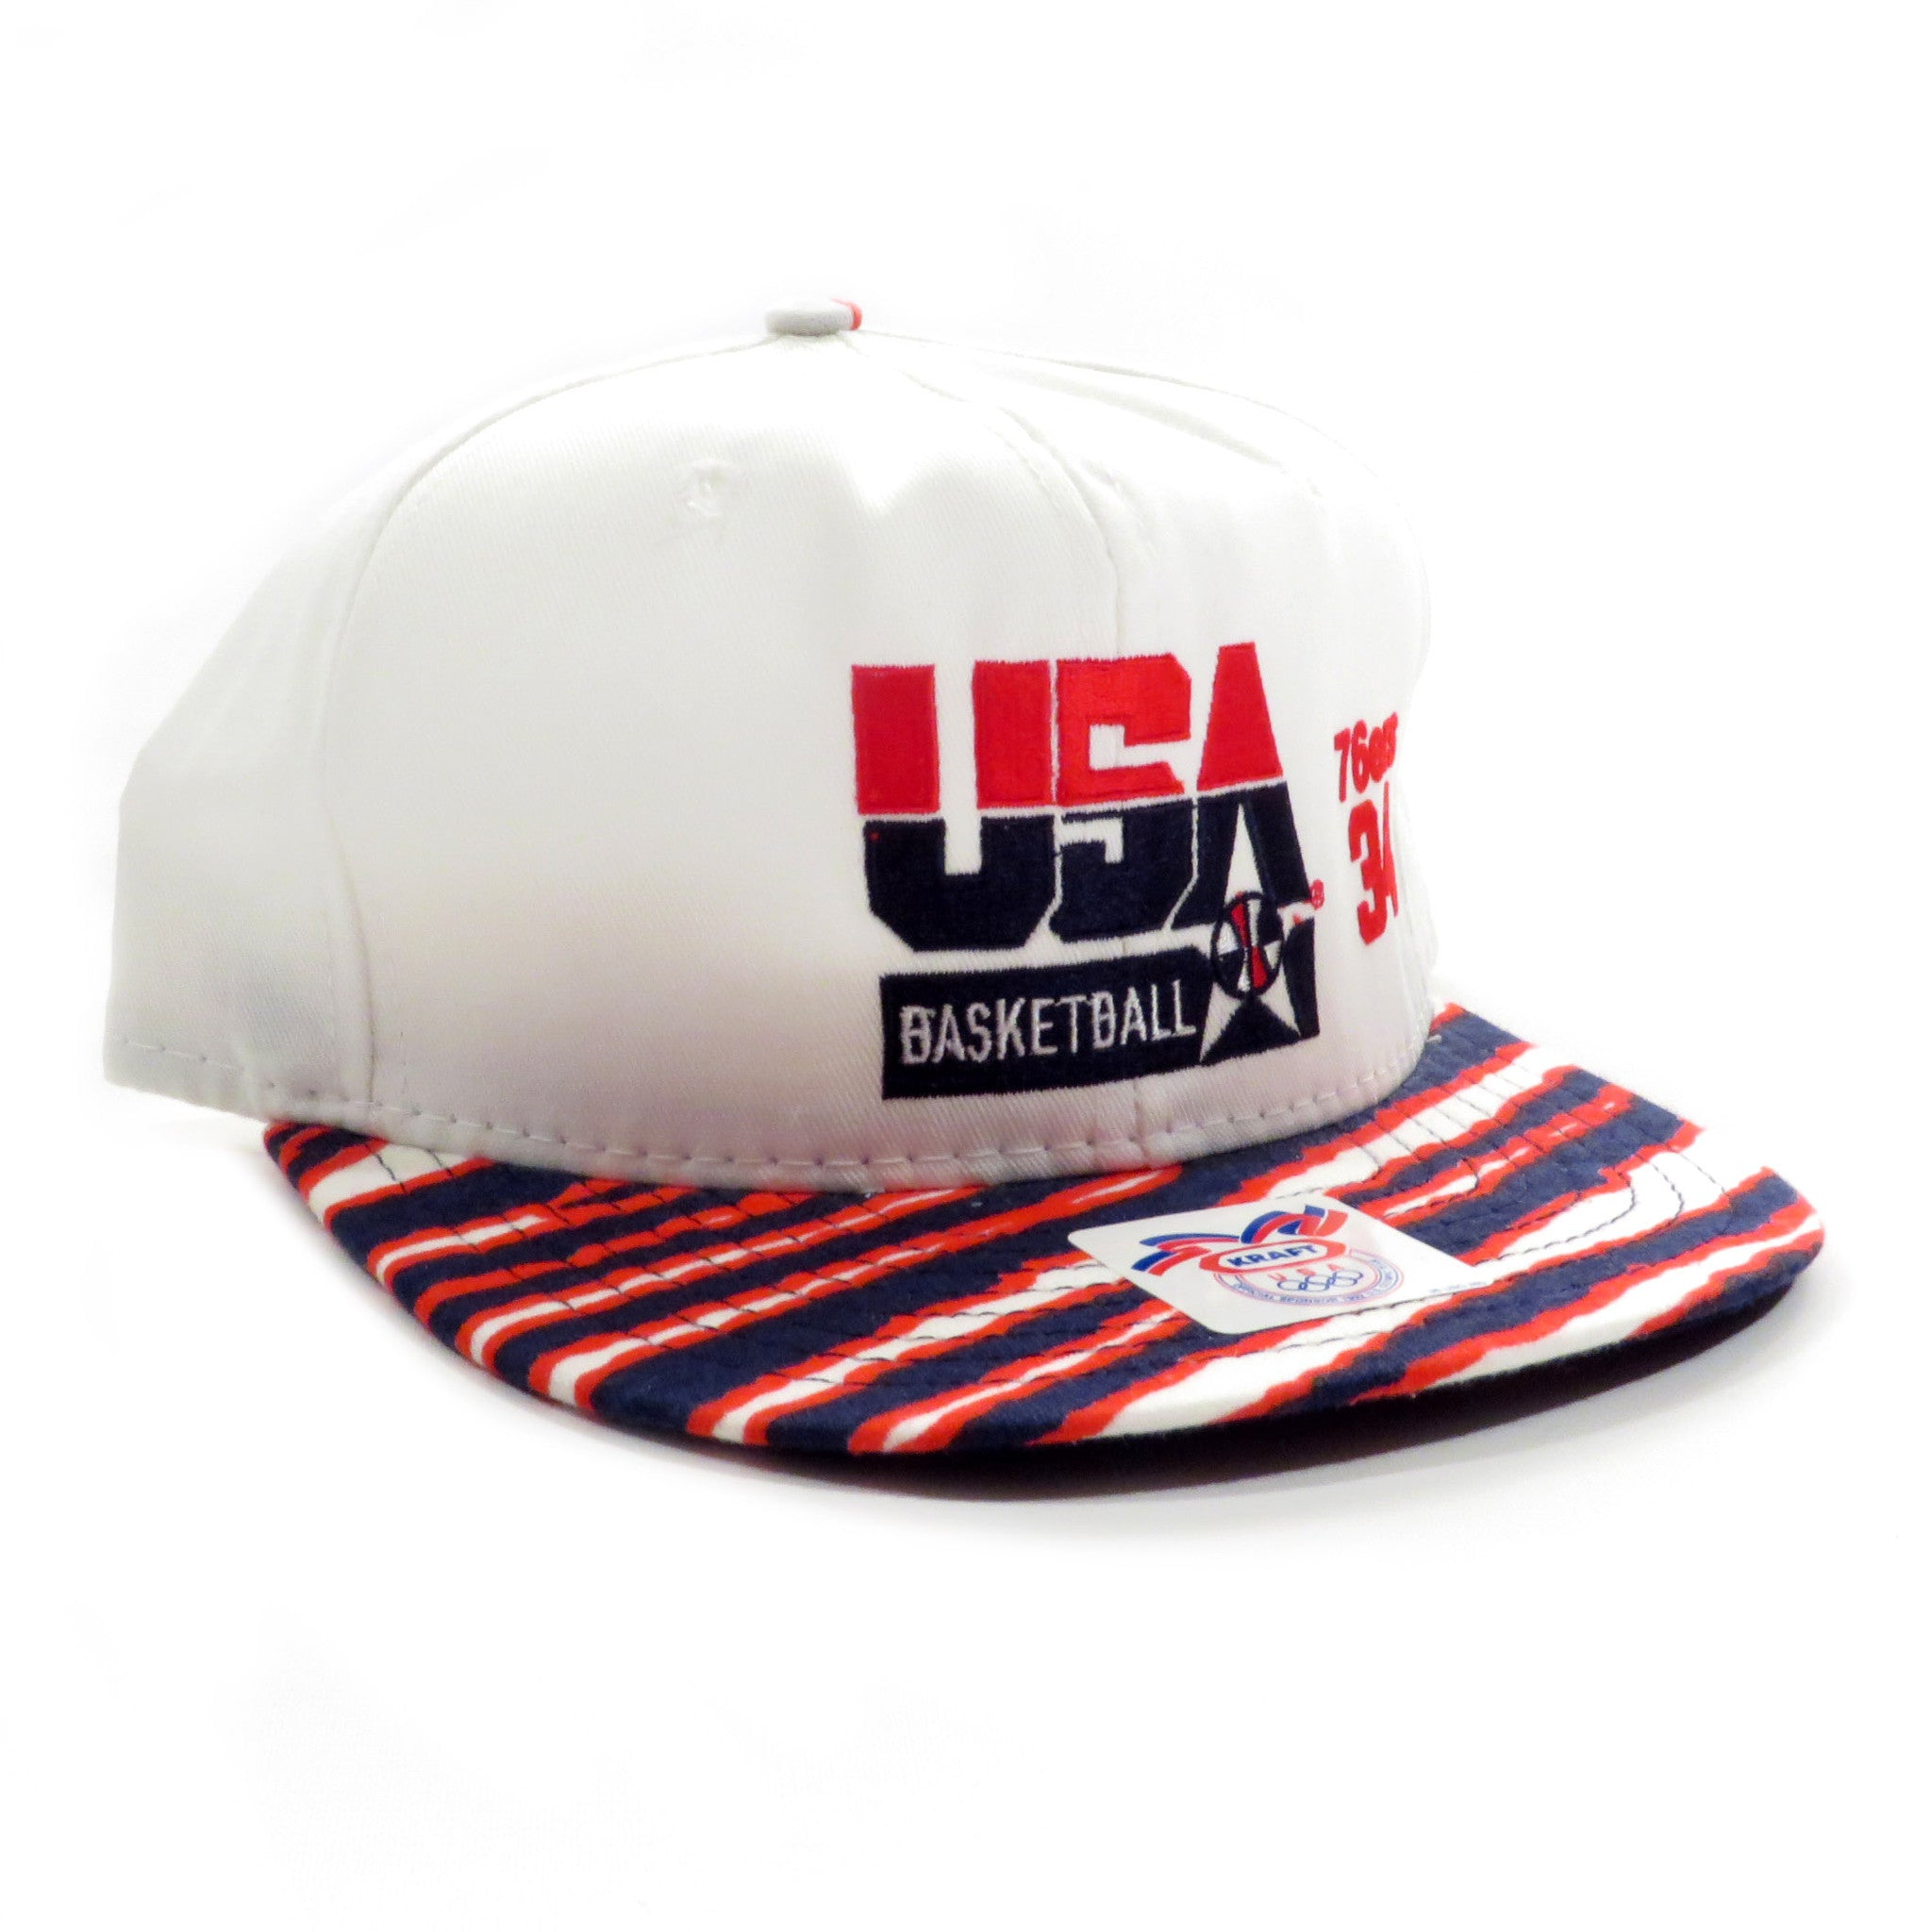 USA Basketball Barkley 34 Sixers Zubaz Snapback Hat